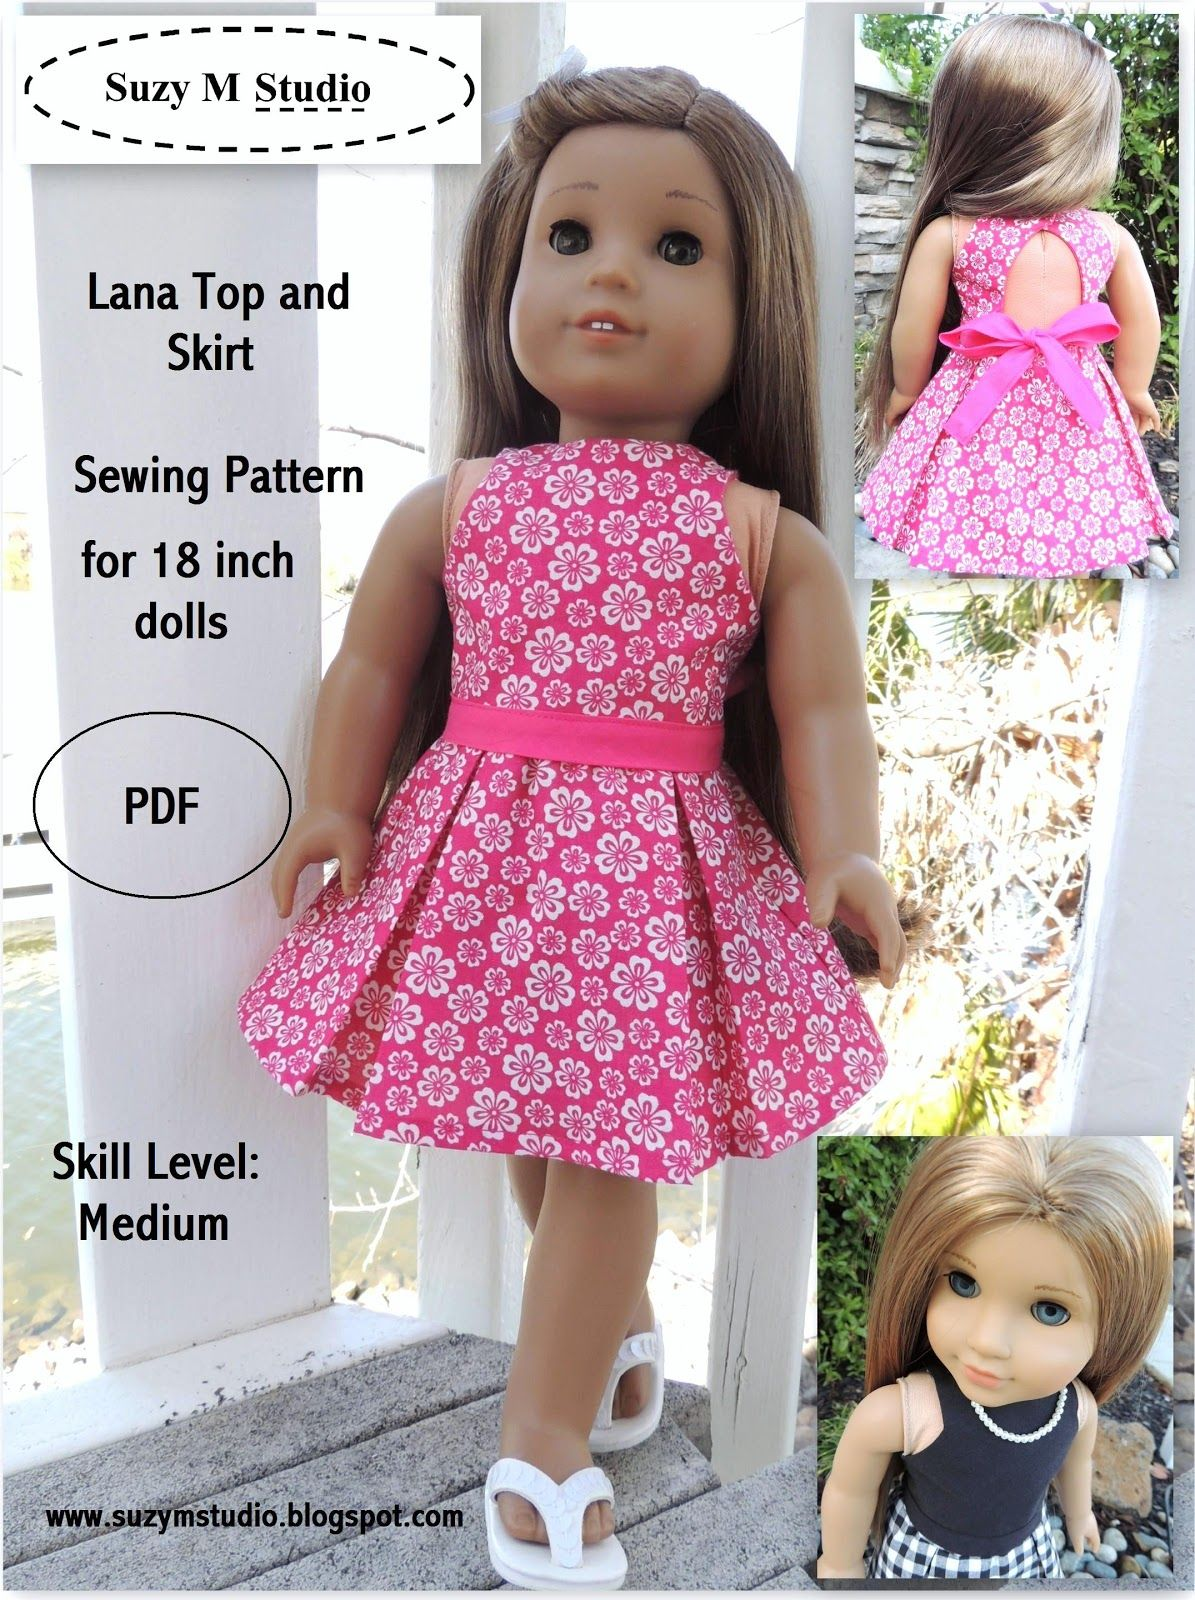 Suzymstudio design. Pattern is a perfect fit for Springfield dolls ...